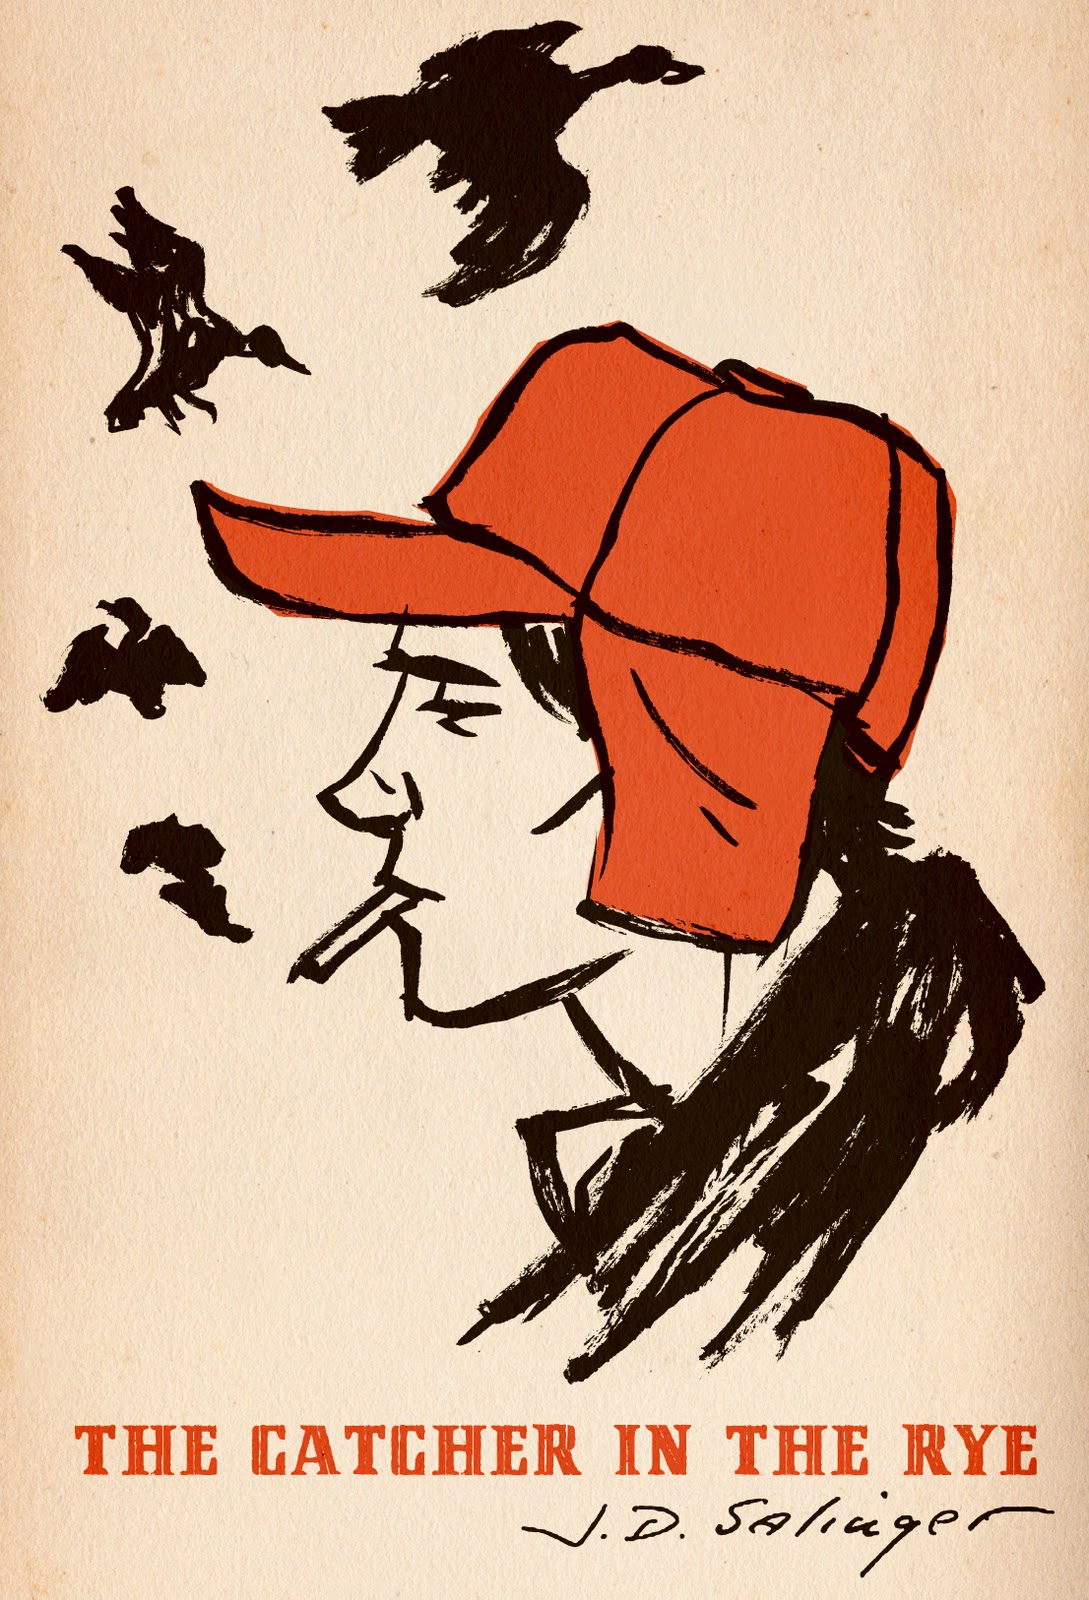 an analysis of the theme of alienation in the catcher in the rye a novel by jd salinger A twenty-one- year- old salinger describes his novel in  margaret salinger likewise traces the alienation in  d salinger, the catcher in the rye.